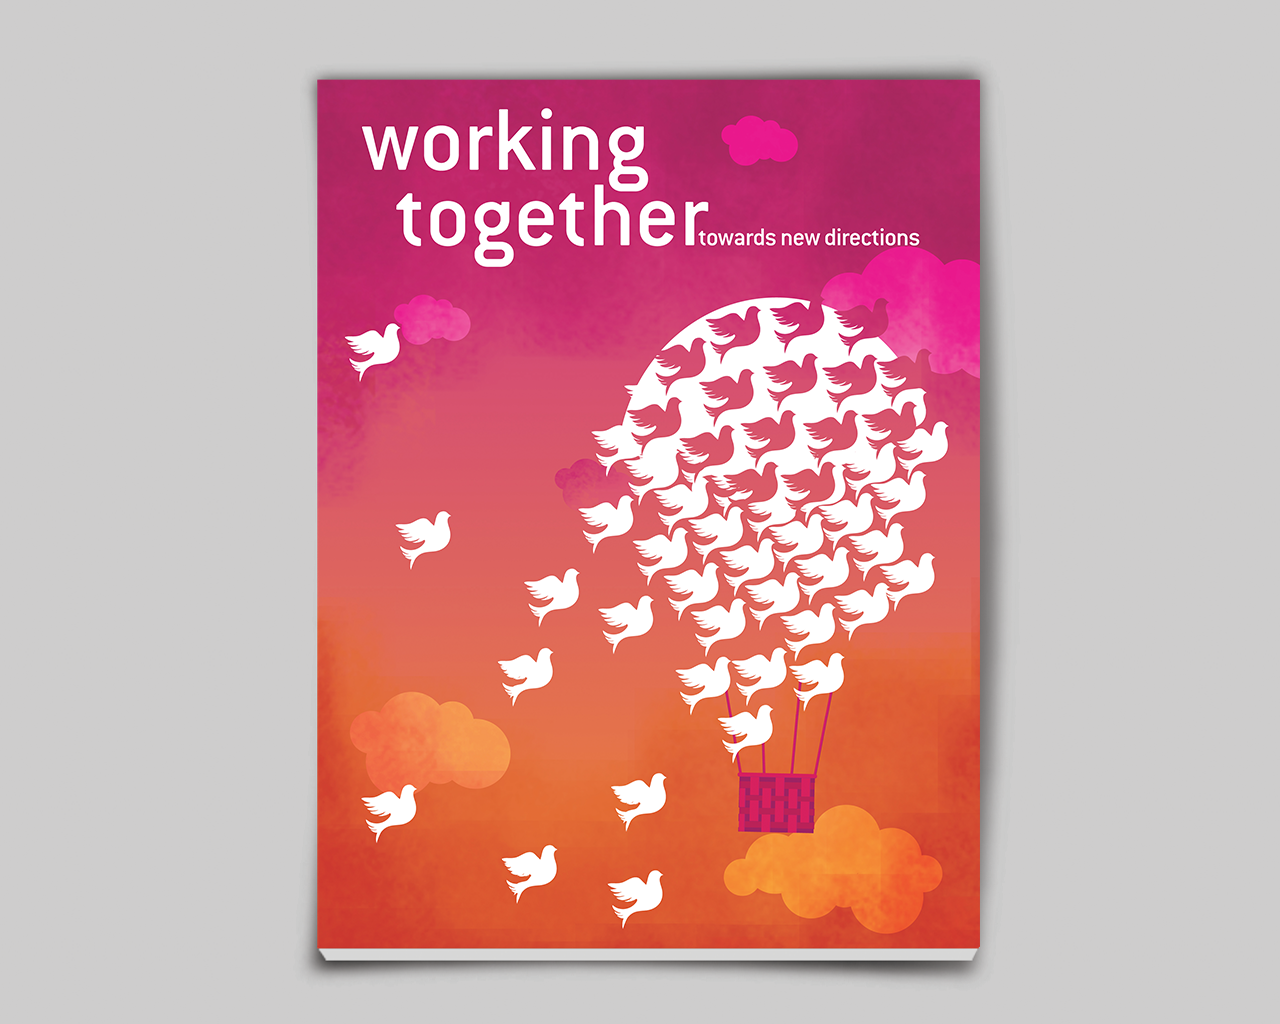 A newsletter cover for a non-for-profit organisation called Youthreach. They work to spread awareness about underprivileged children and youth, environment and disability by bridging the gap between corporates and not-for-profits through volunteer programmes and community workshops. The annual newsletter is called Working Together.